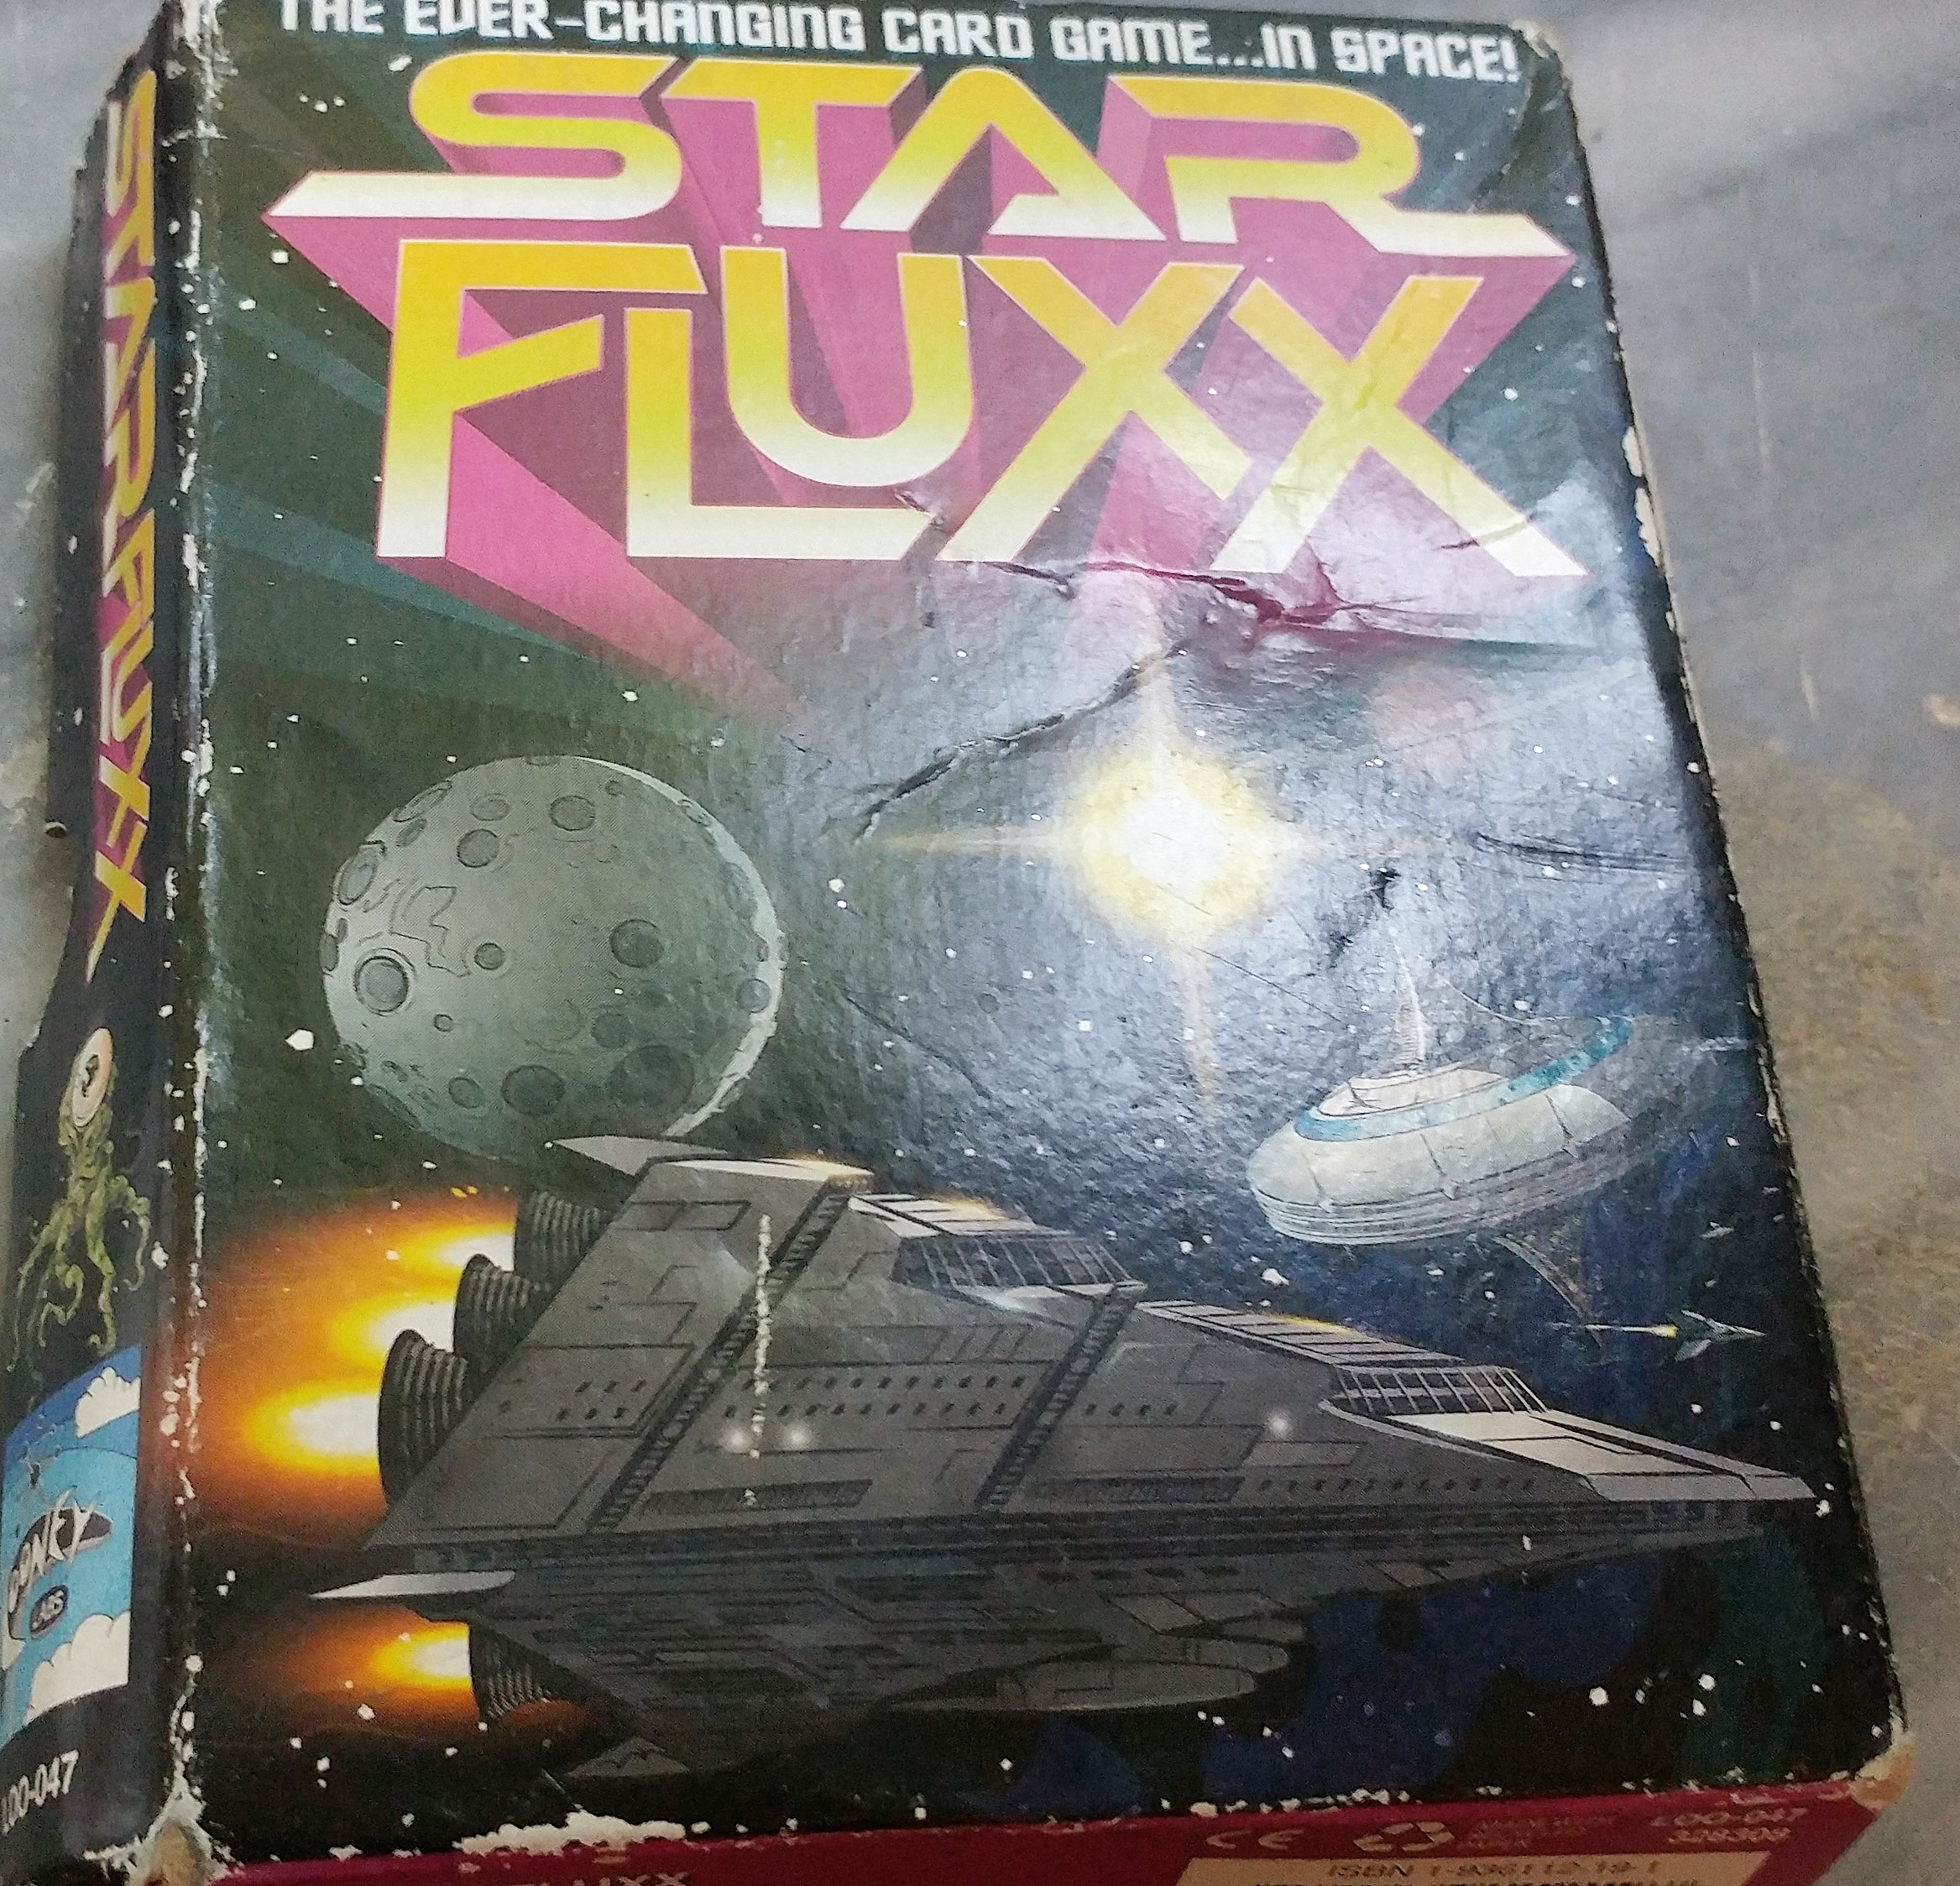 Star Fluxx box